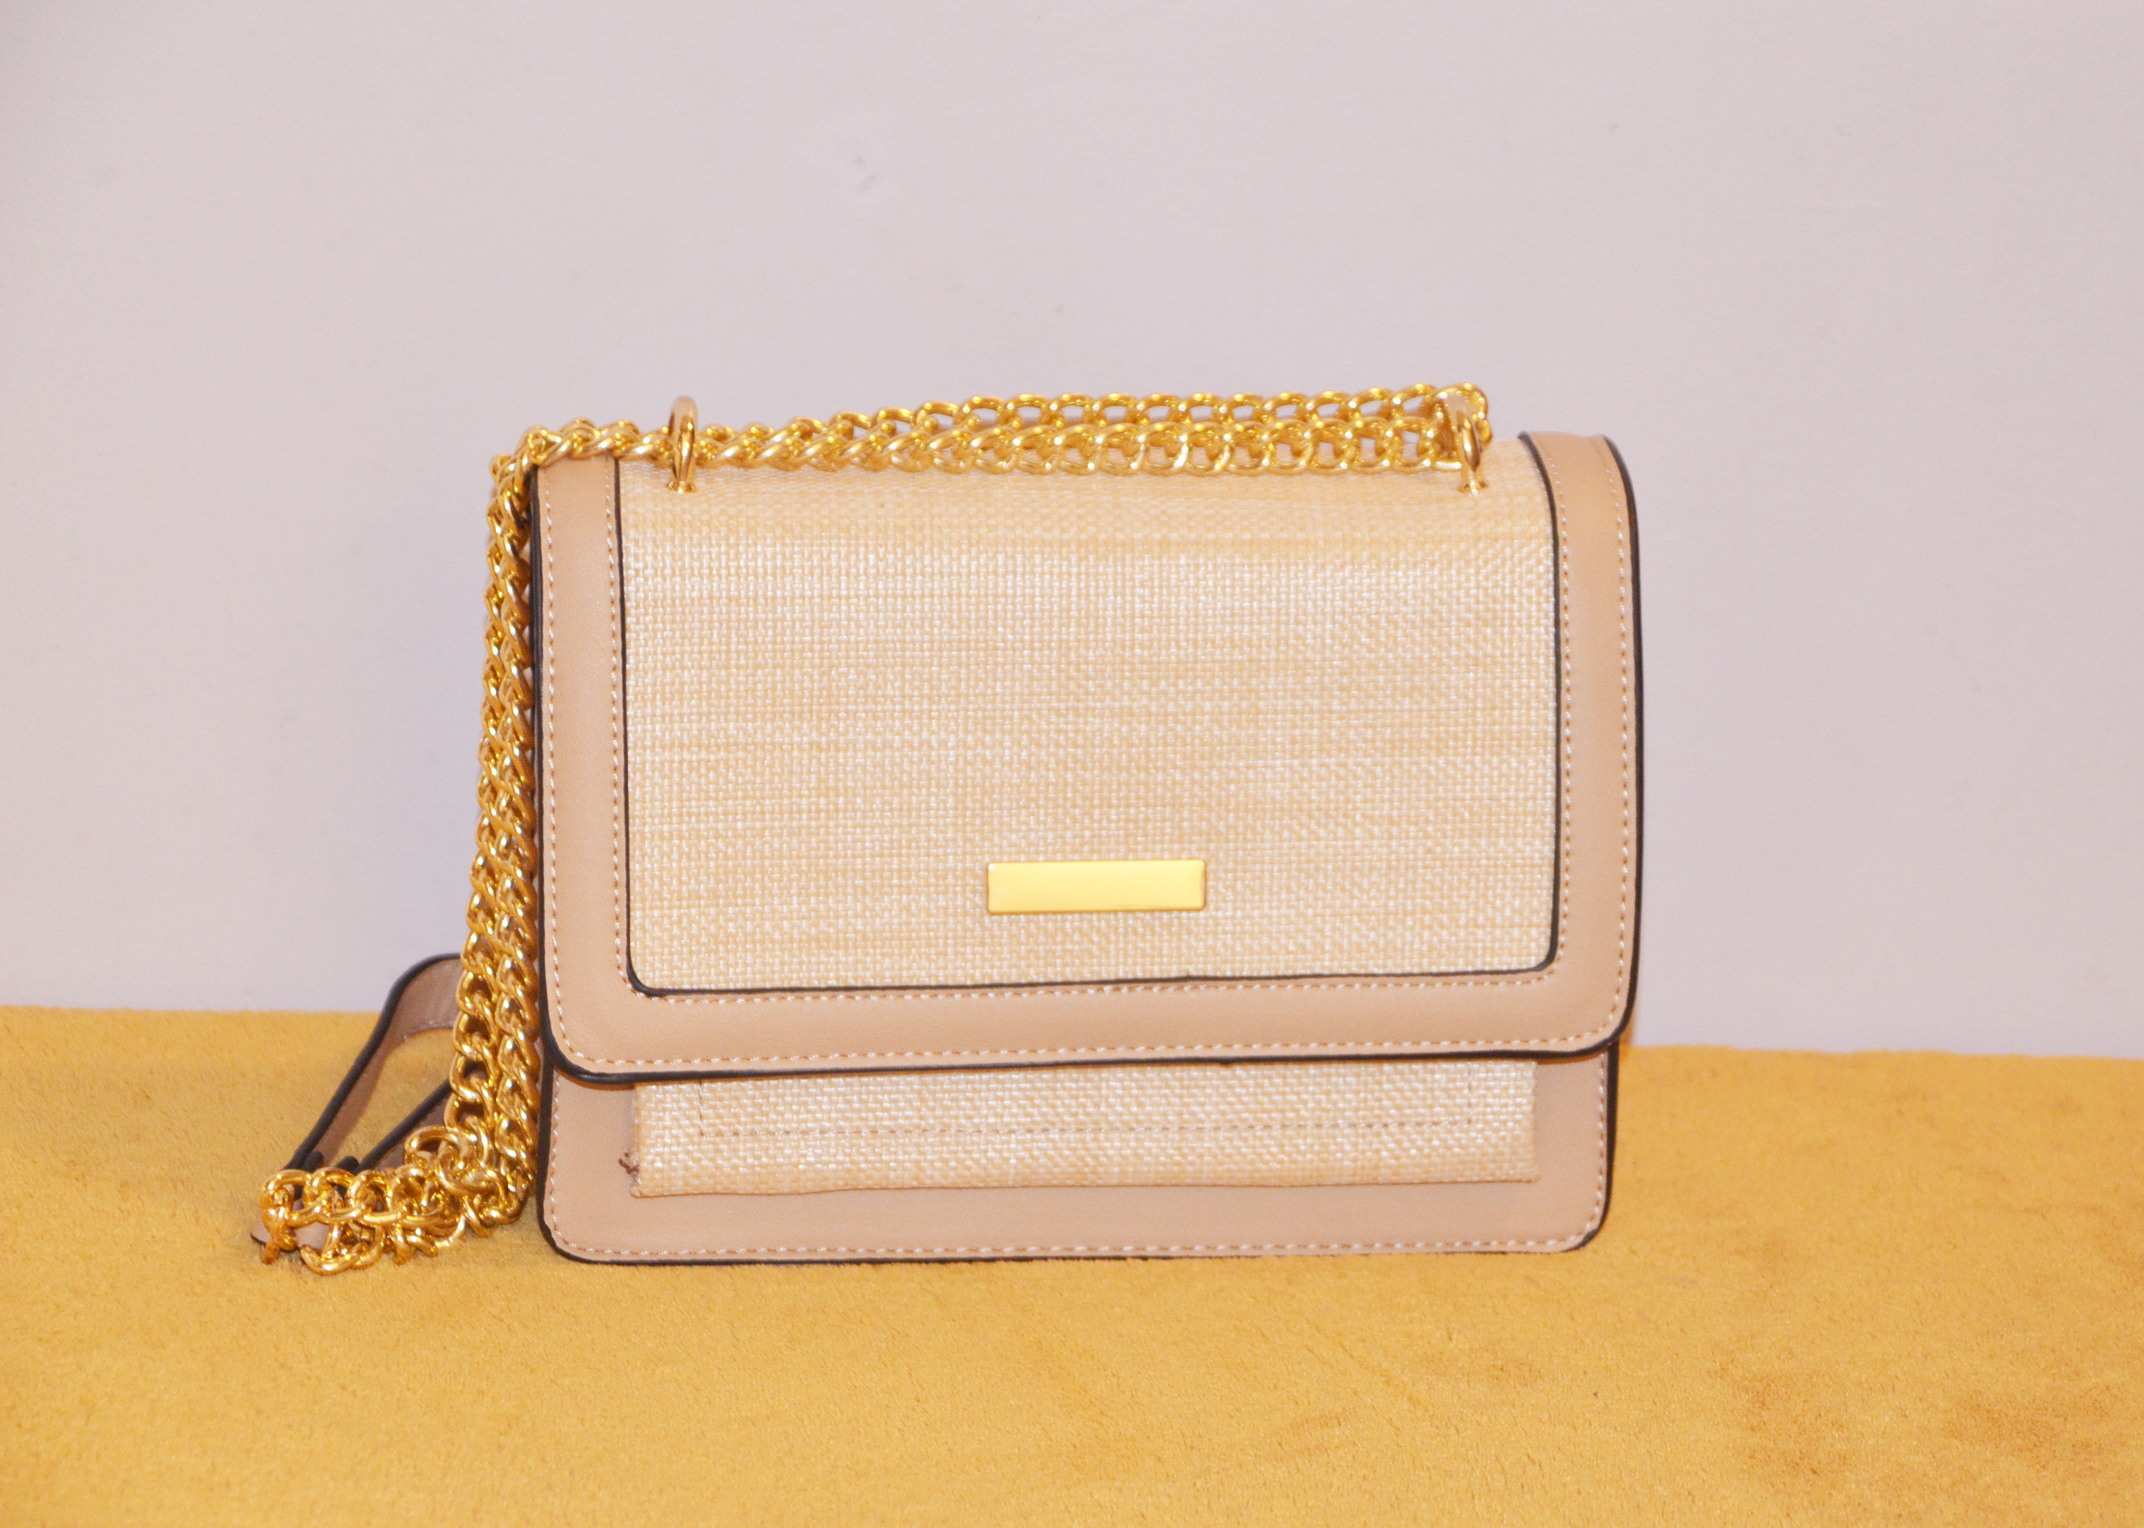 Sac à bandoulière - BE EXCLUSIVE - Beige